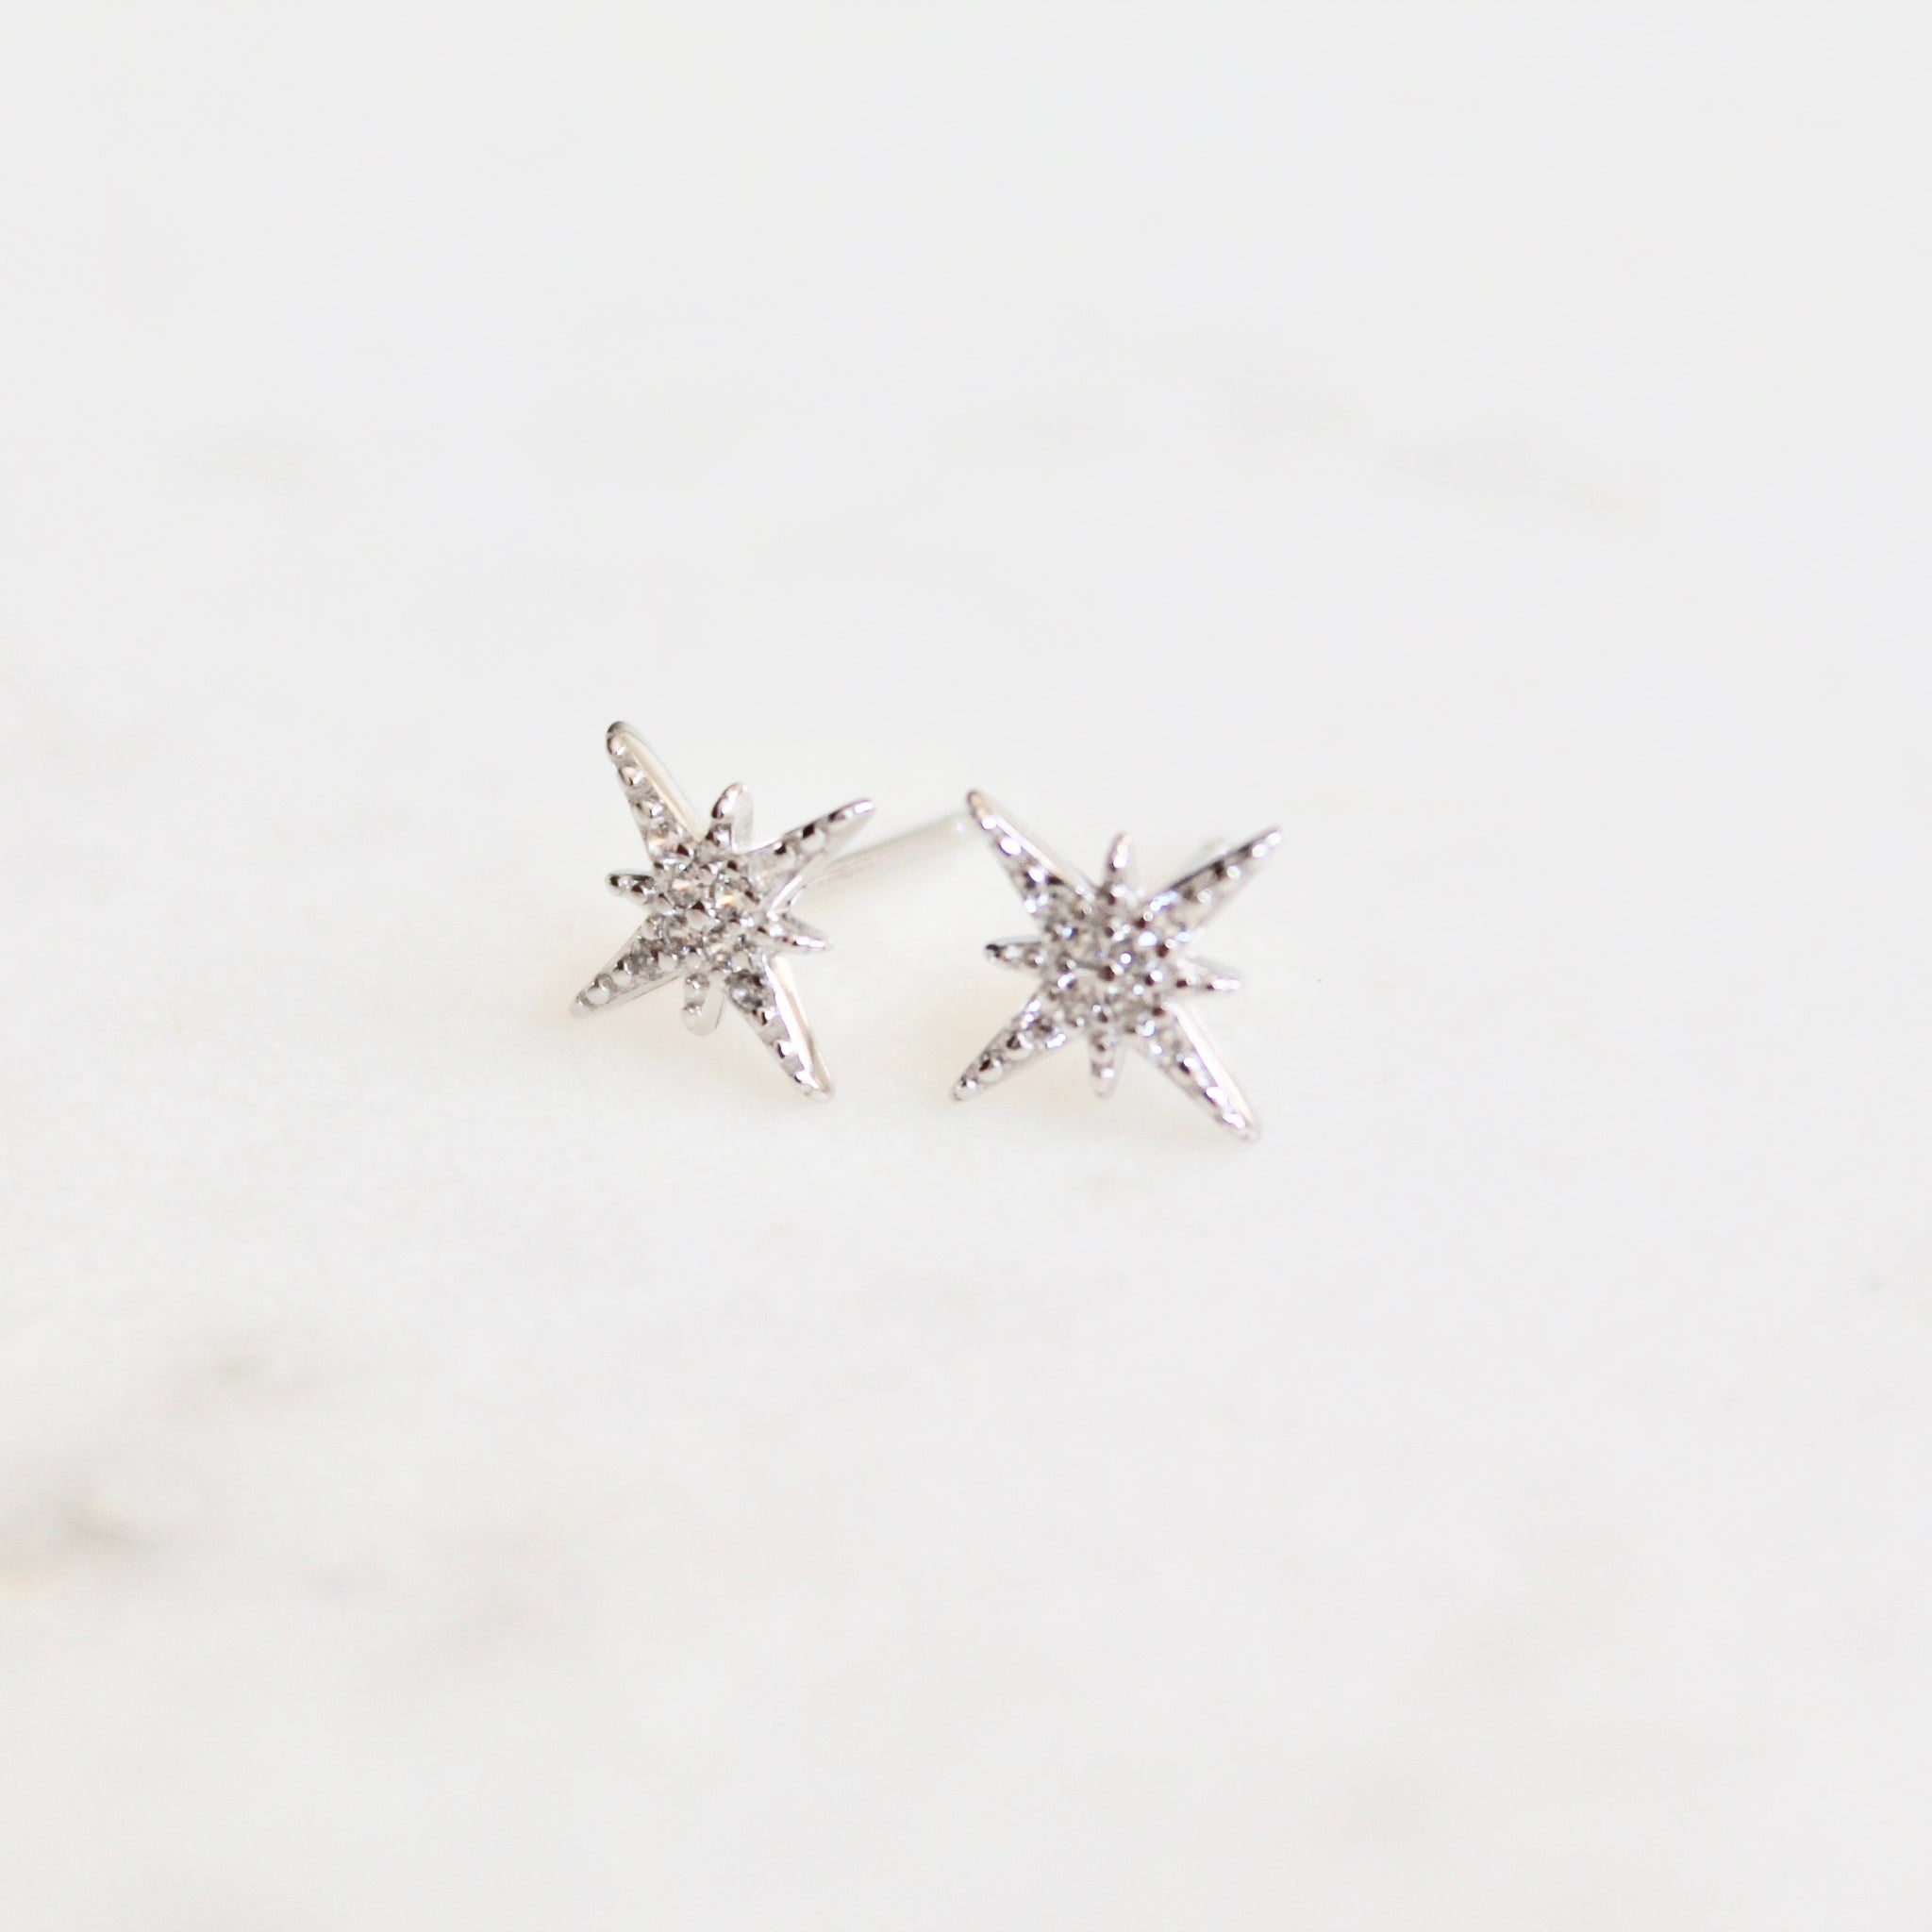 Star stud earrings - Lily Lough Jewelry